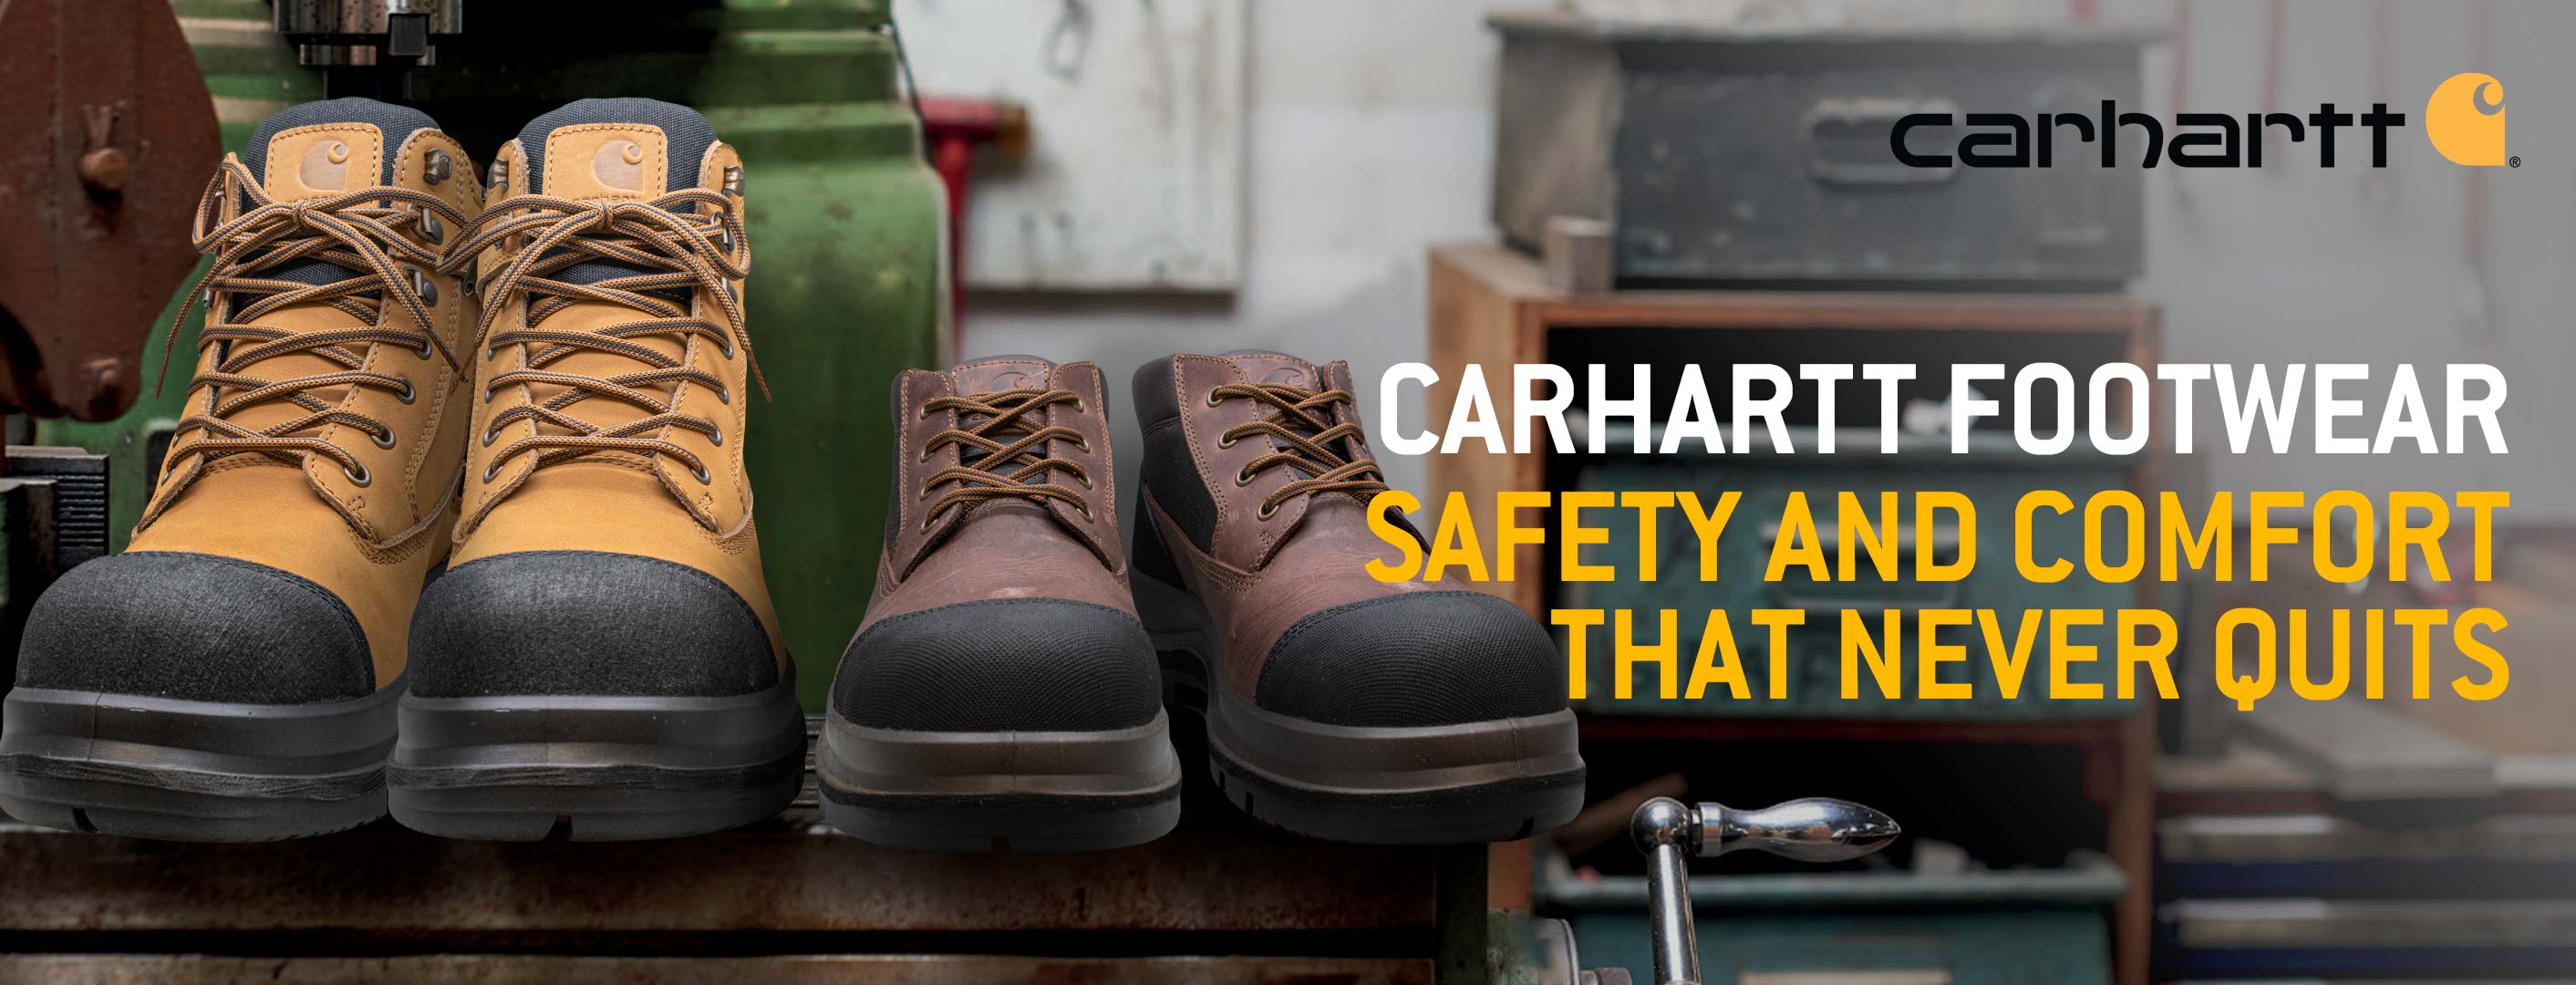 Carhartt Workwear at RSEA Safety - The Safety Experts!